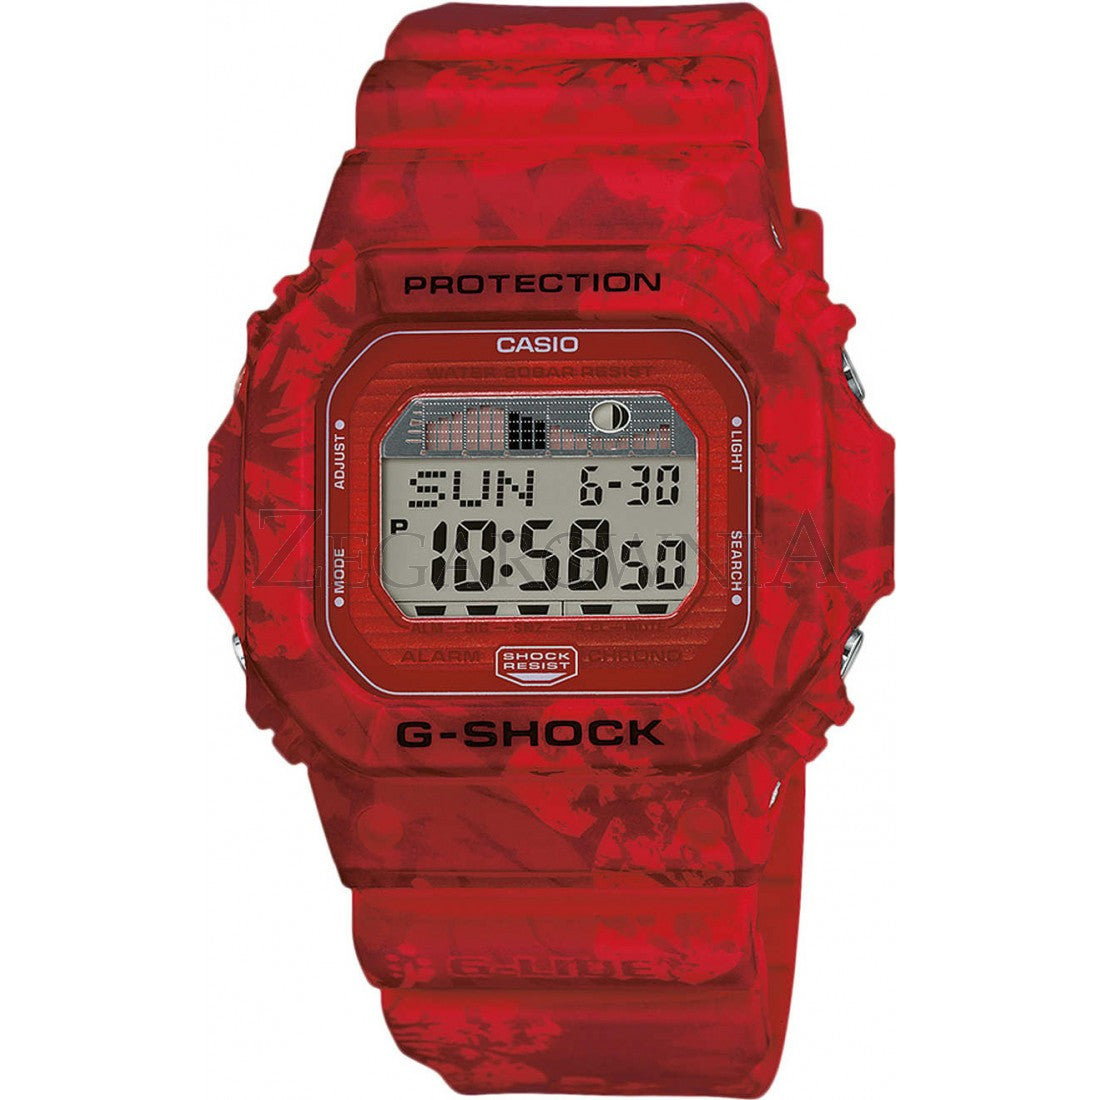 Casio G Shock Tagged Standard Digital Timeteller Camouflage Gd 120cm 4dr Men Red Glx 5600f 4er